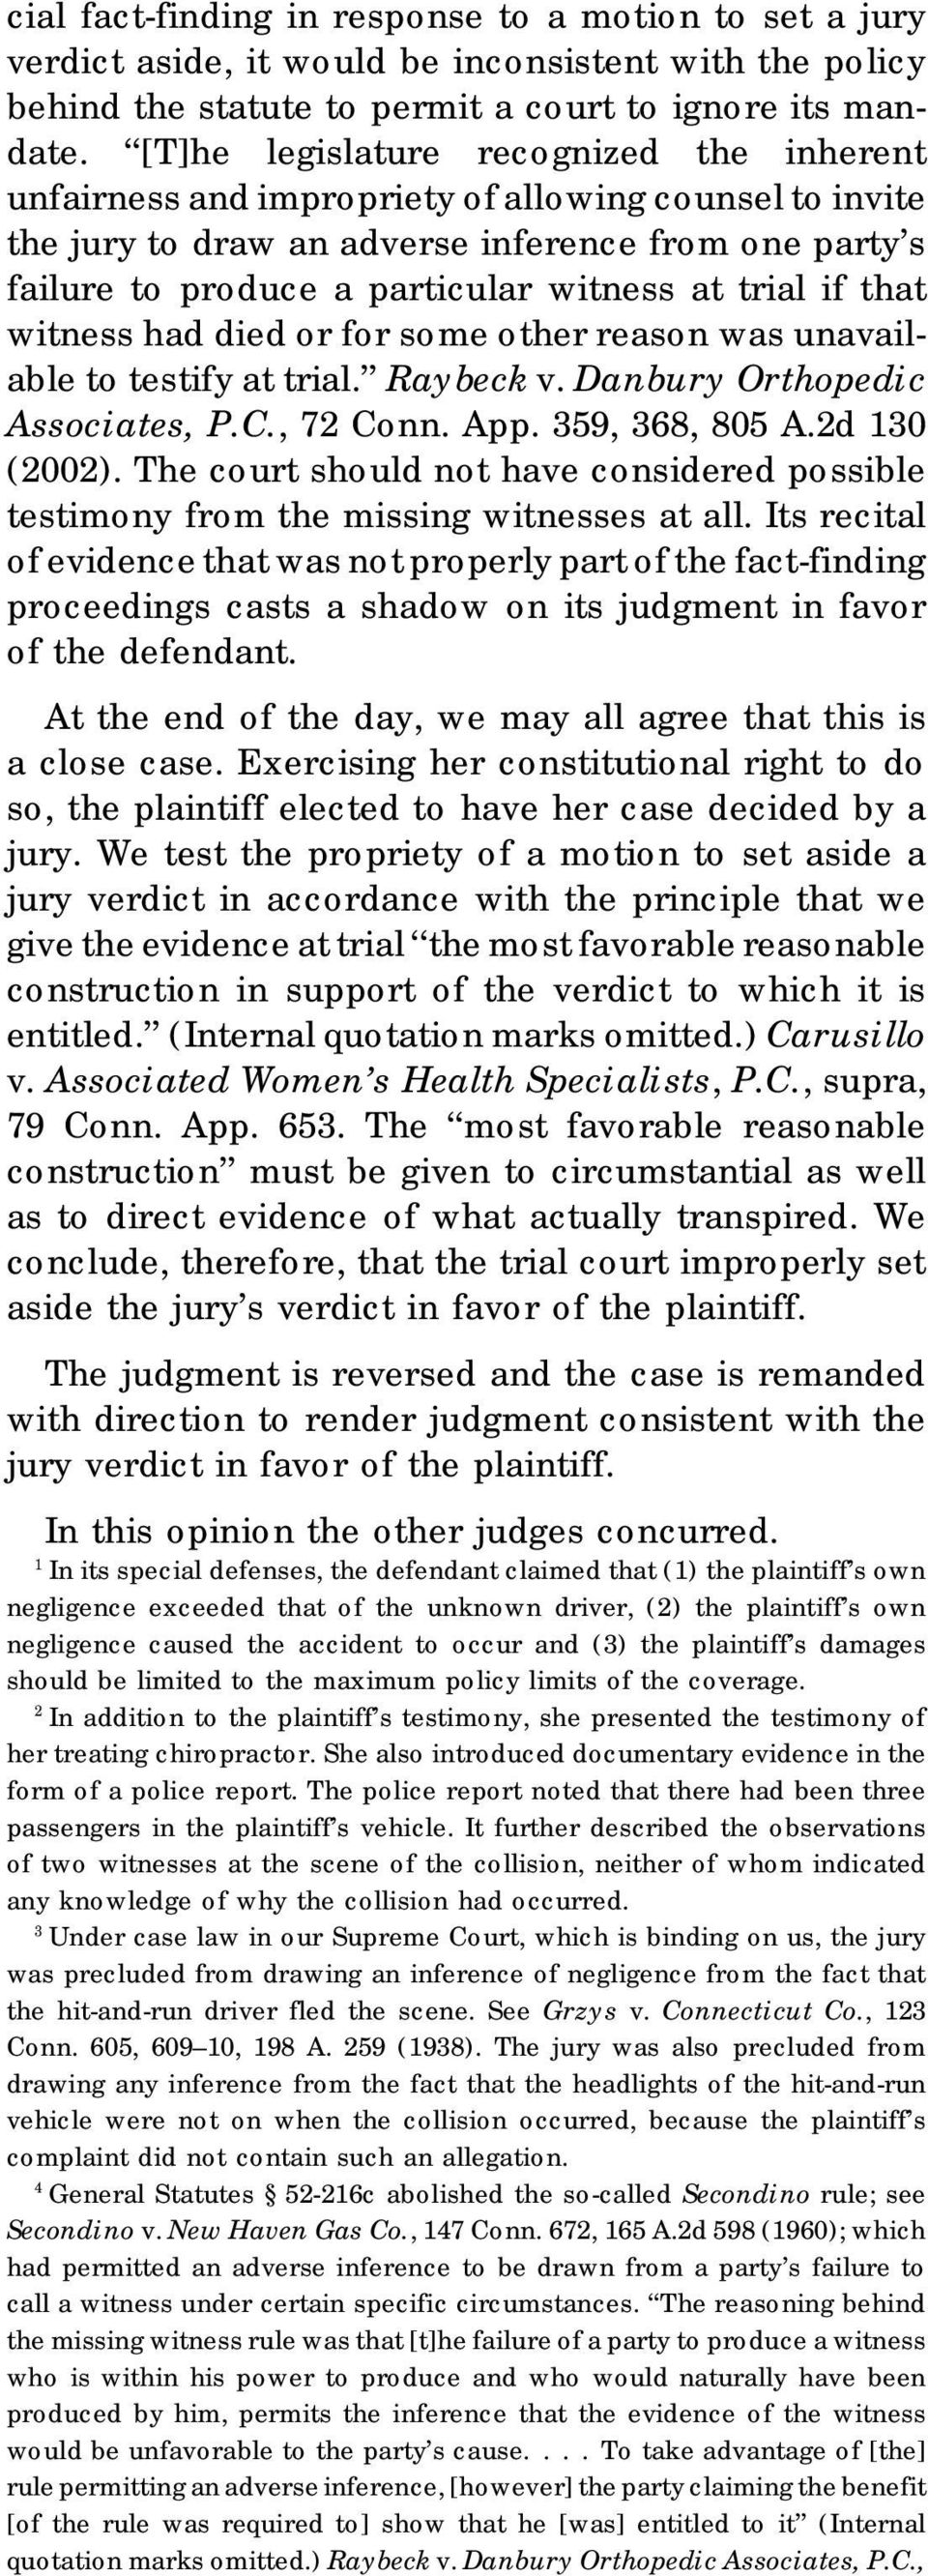 trial if that witness had died or for some other reason was unavailable to testify at trial. Raybeck v. Danbury Orthopedic Associates, P.C., 72 Conn. App. 359, 368, 805 A.2d 130 (2002).